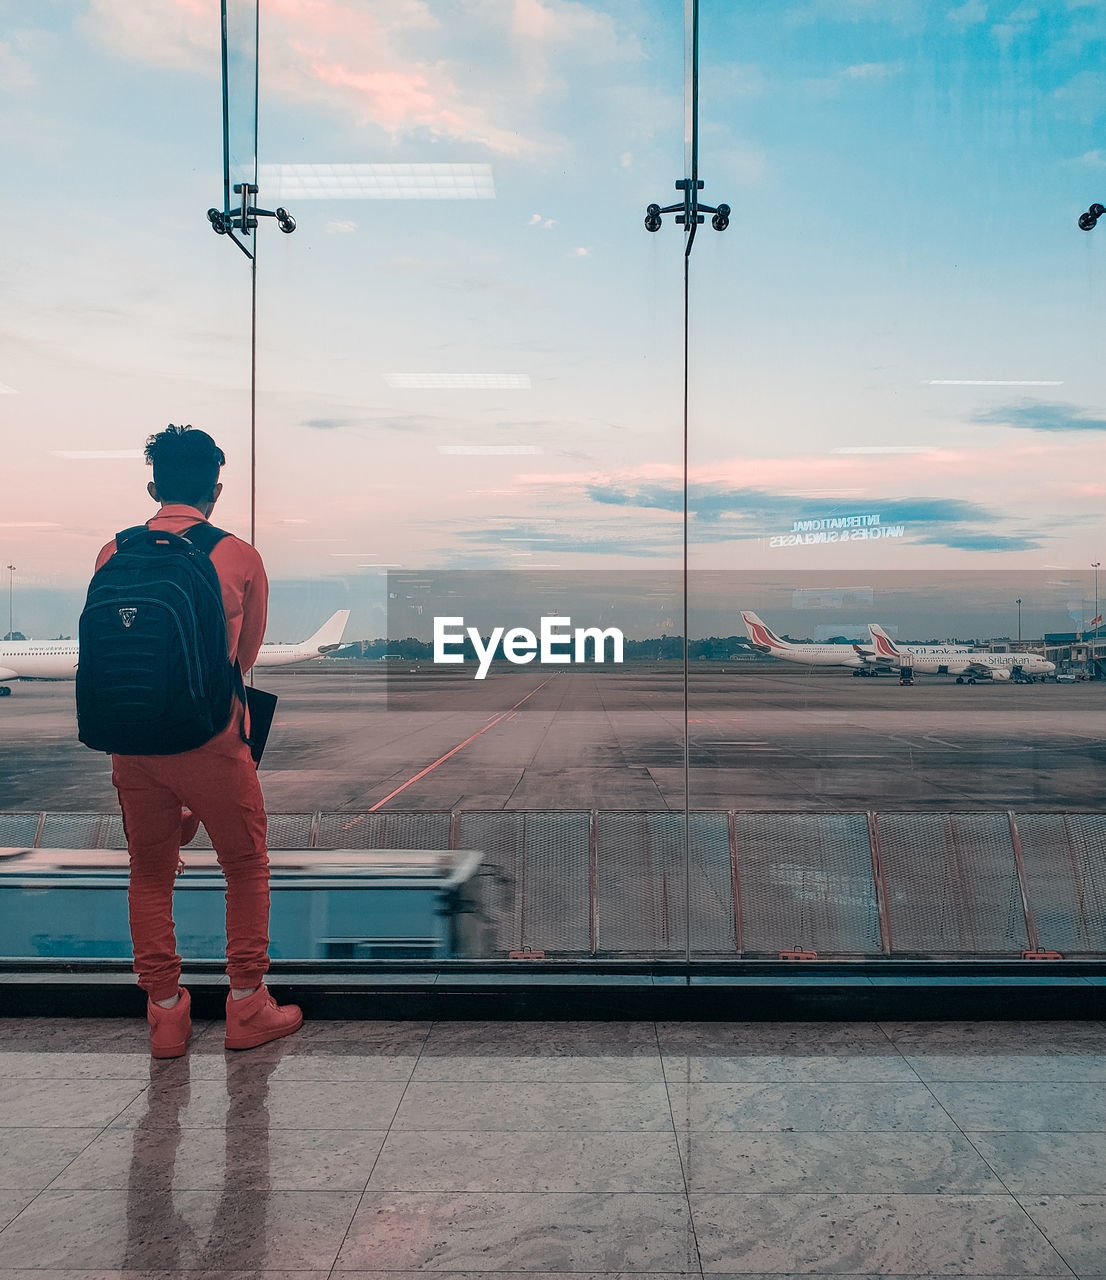 sky, rear view, airport, transportation, airplane, air vehicle, one person, cloud - sky, full length, standing, glass - material, real people, airport runway, sunset, travel, mode of transportation, men, nature, transparent, outdoors, looking at view, waiting